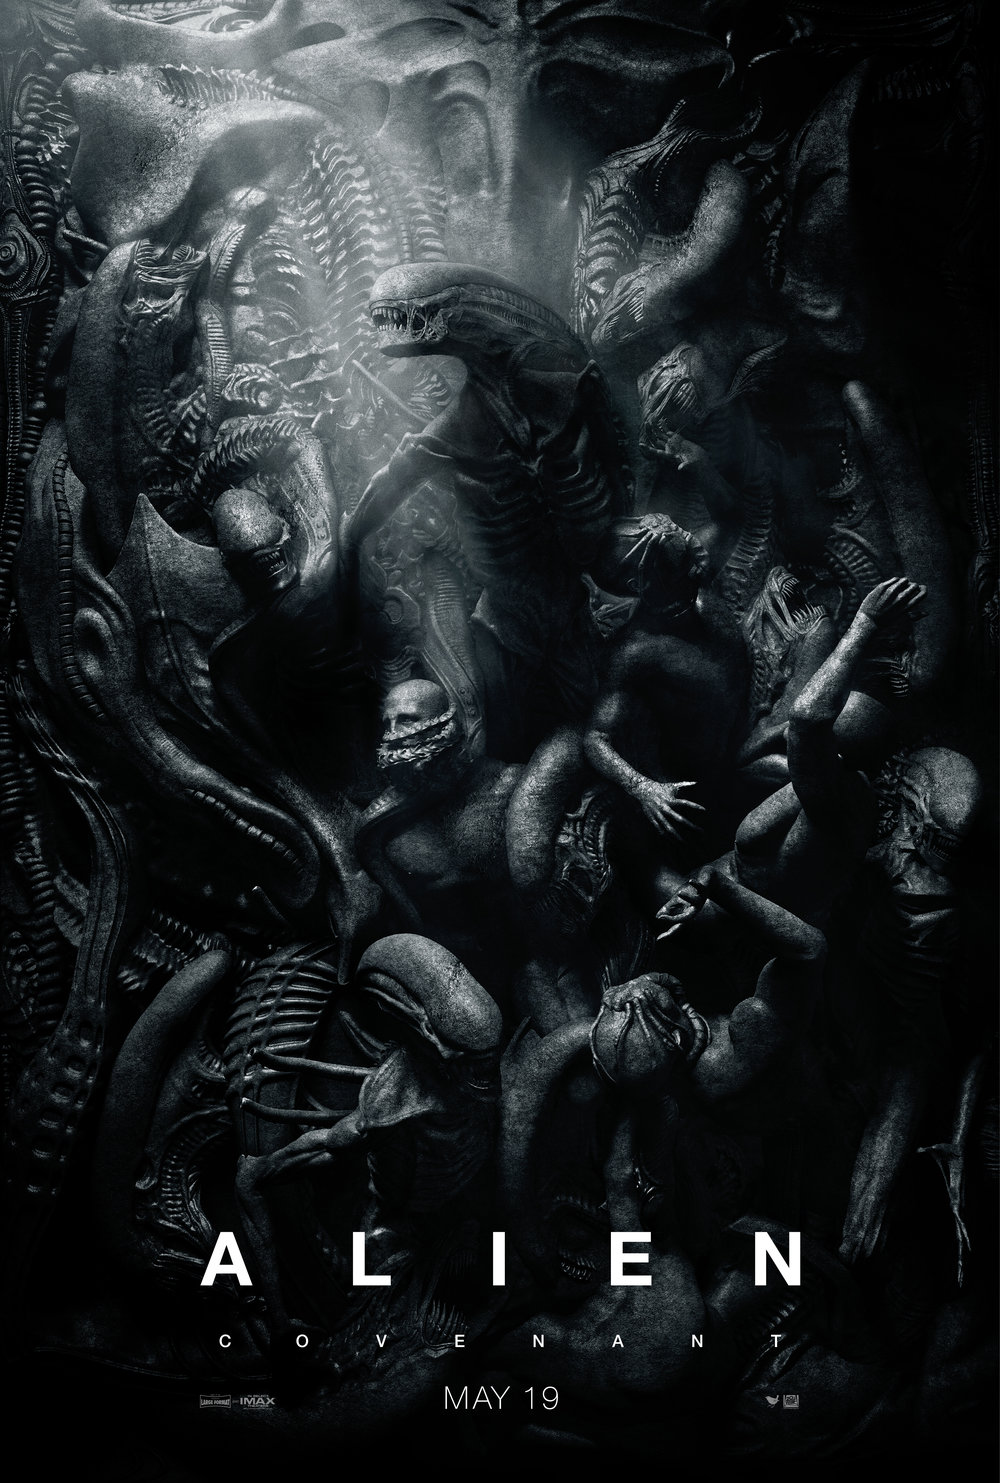 new-alien-covenant-poster-art-the-path-to-paradise-begins-in-hell1